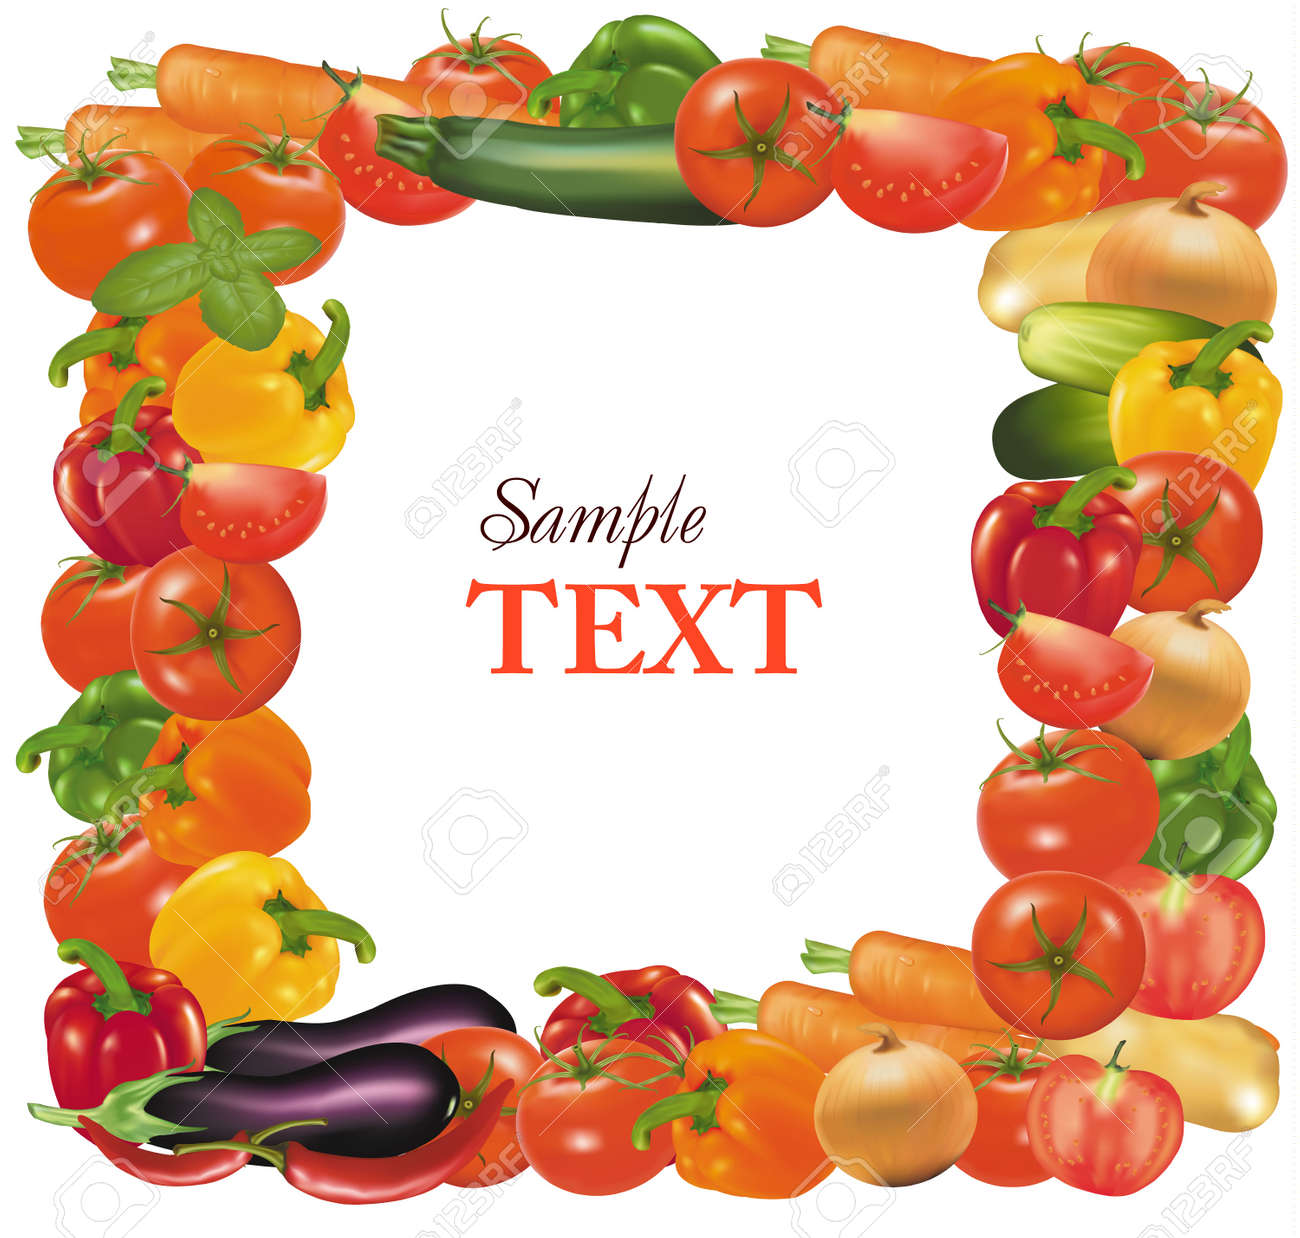 Vegetable Garden Border Clipart Frame Made From Vegetables Stock Vector 9053478